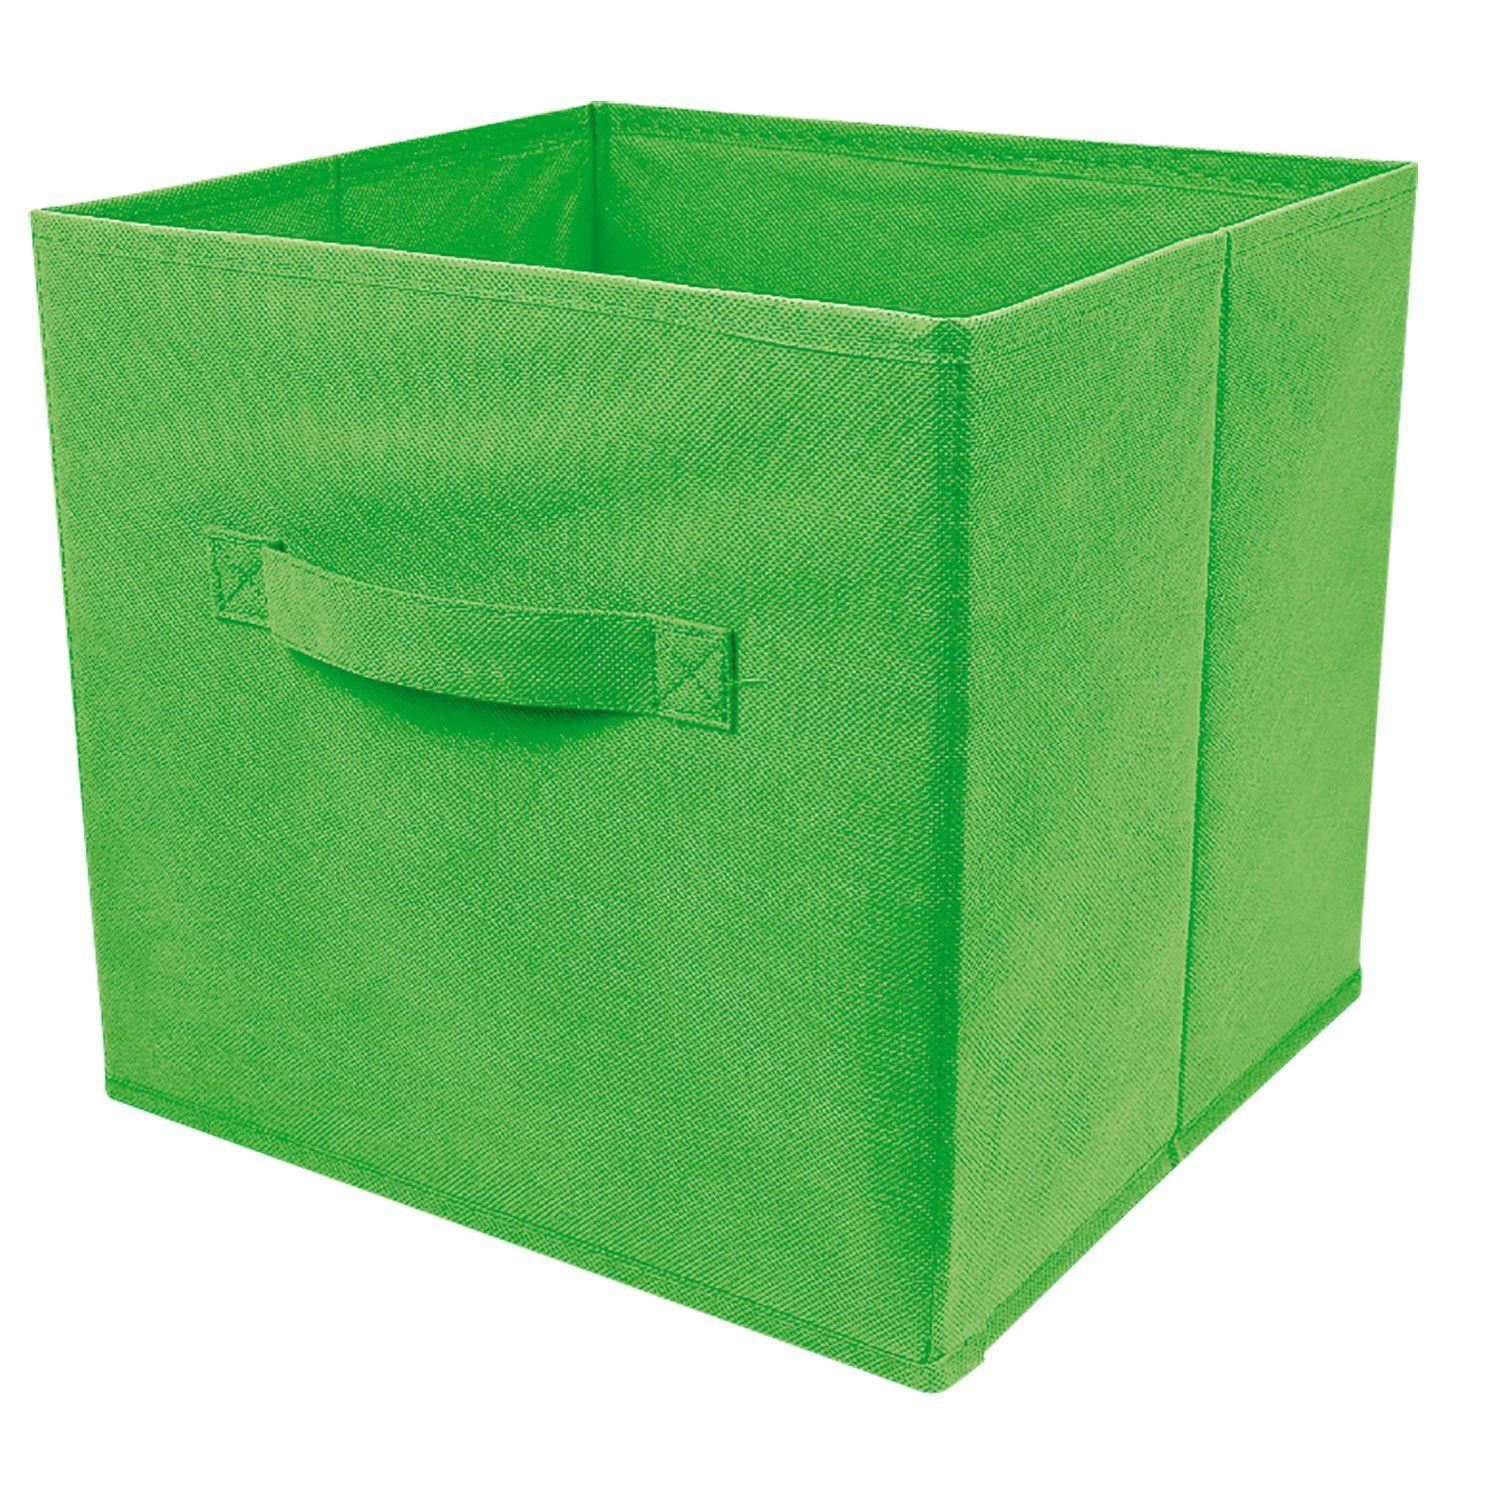 2019 New Wardrobe Kids Organizer Bins Box For Toys: 6 Foldable Square Storage Collapsible Folding Box Clothes